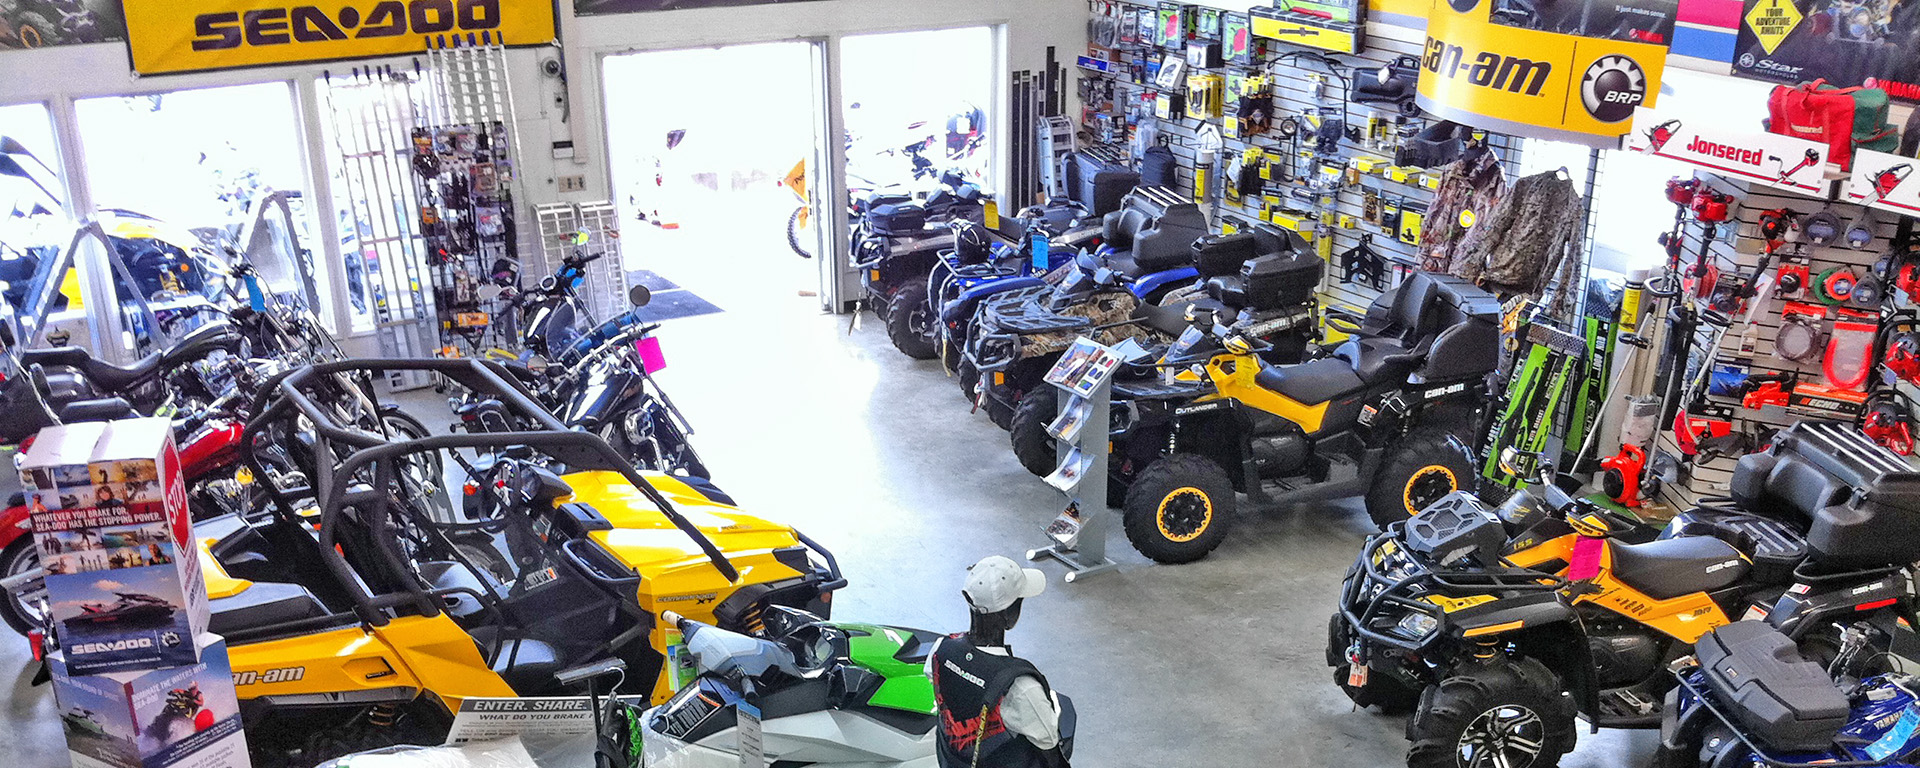 ATVs, side-by-sides and motorcycles on display within store at Playmor Power Products